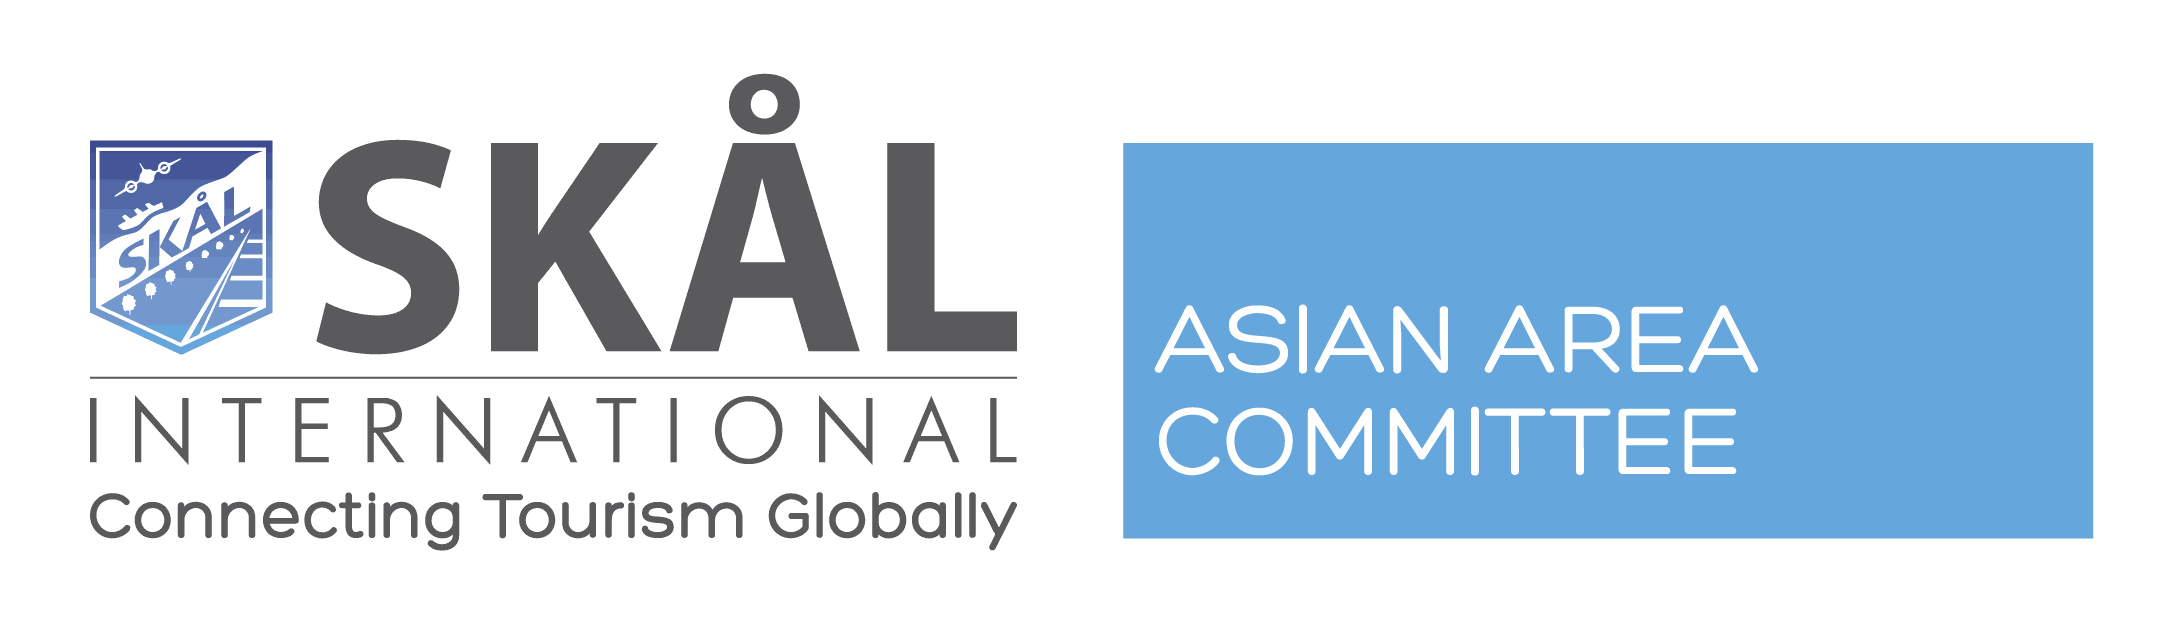 Skål International Asian Area